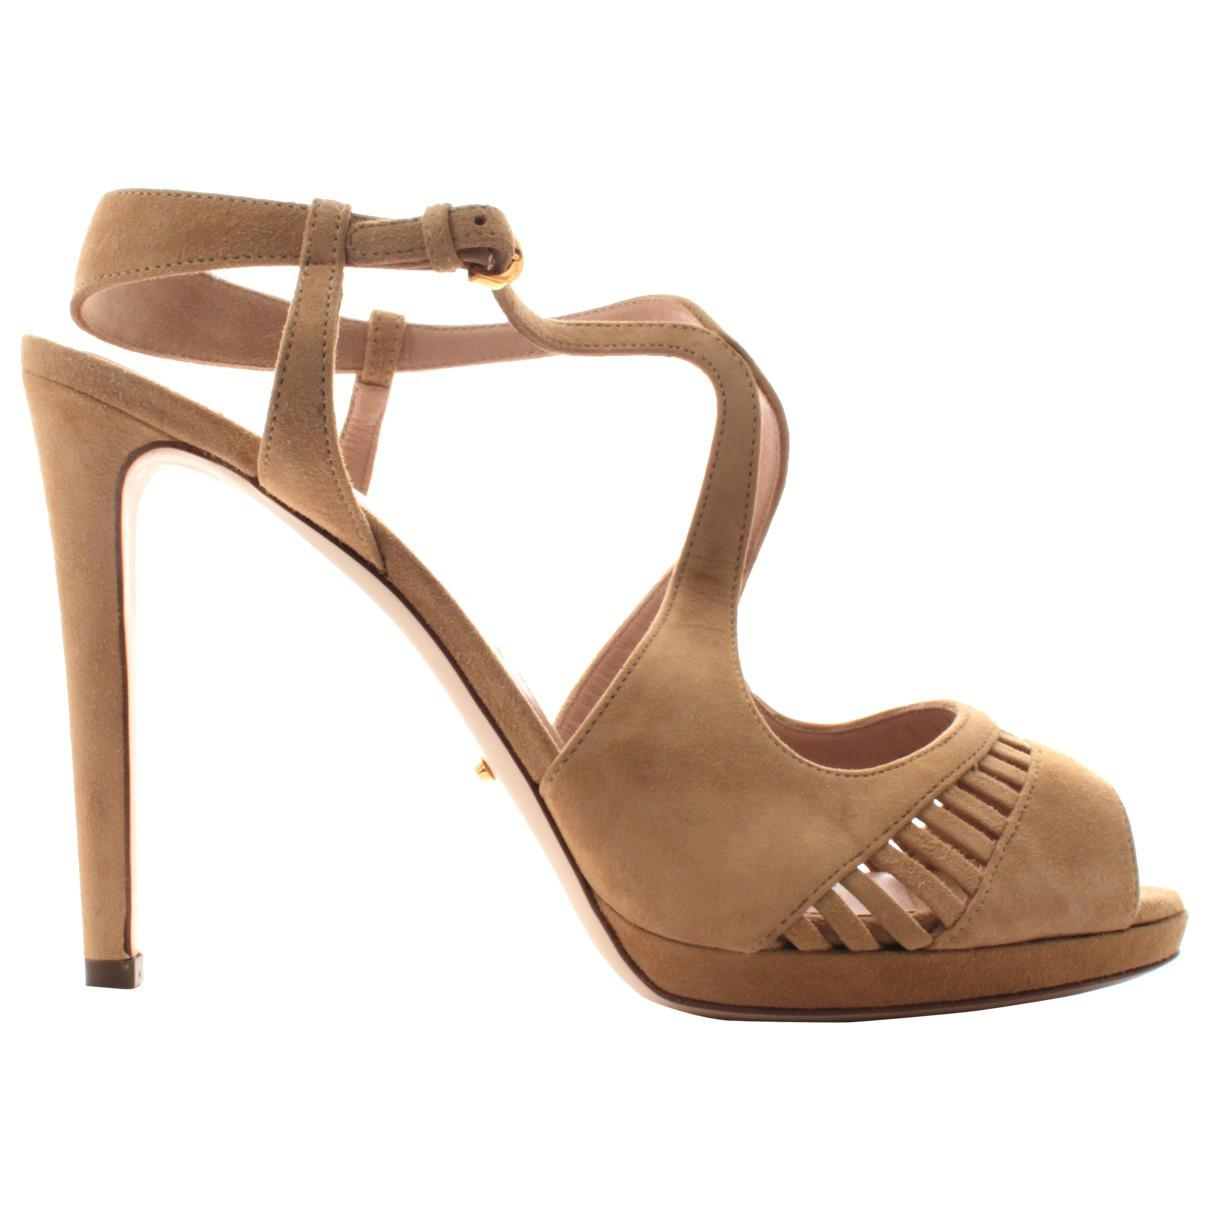 Pre-owned - Leather sandal Sergio Rossi Popular Sale Online Cheap Sale Shopping Online Outlet Footaction Clearance For Cheap d59SOXXs1